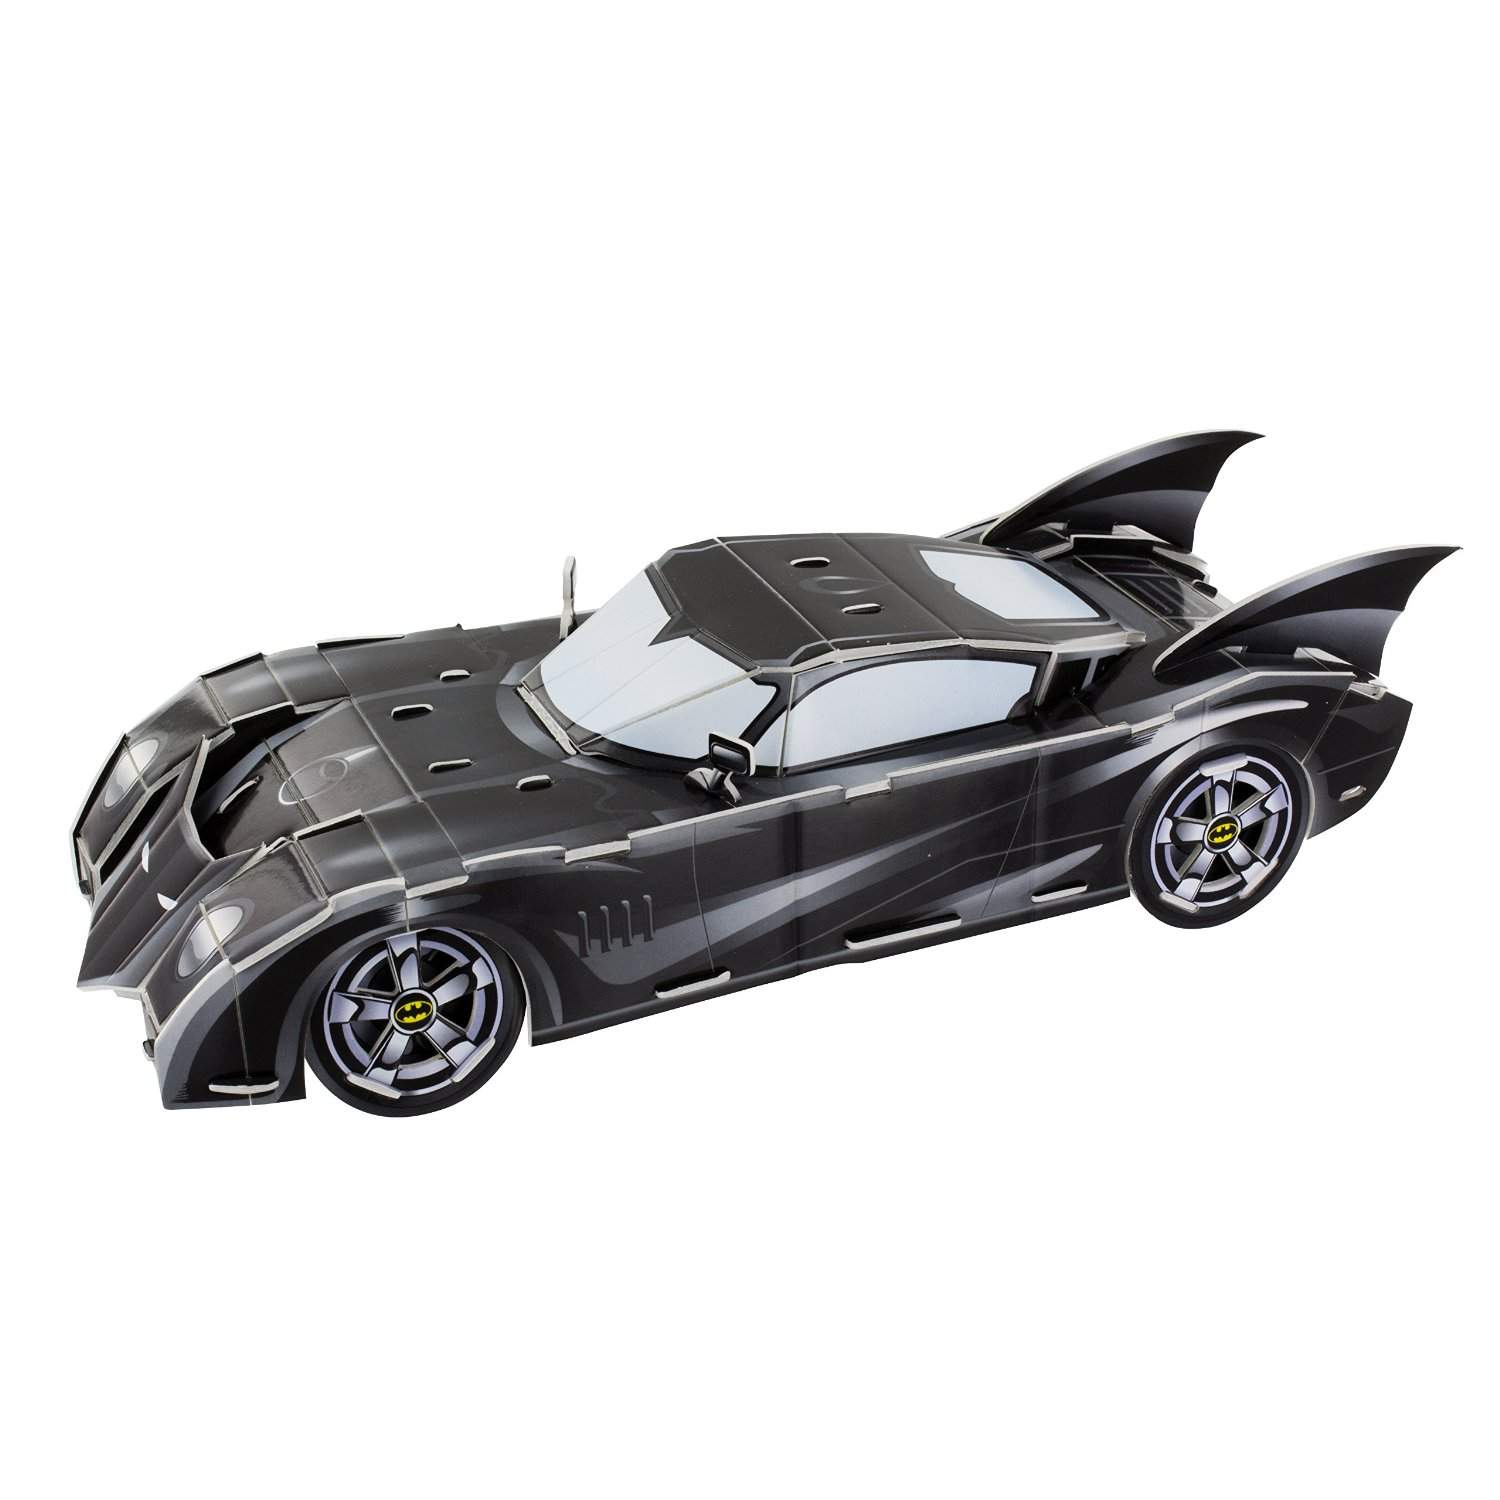 DC Comics Build Your Own Bat Mobile